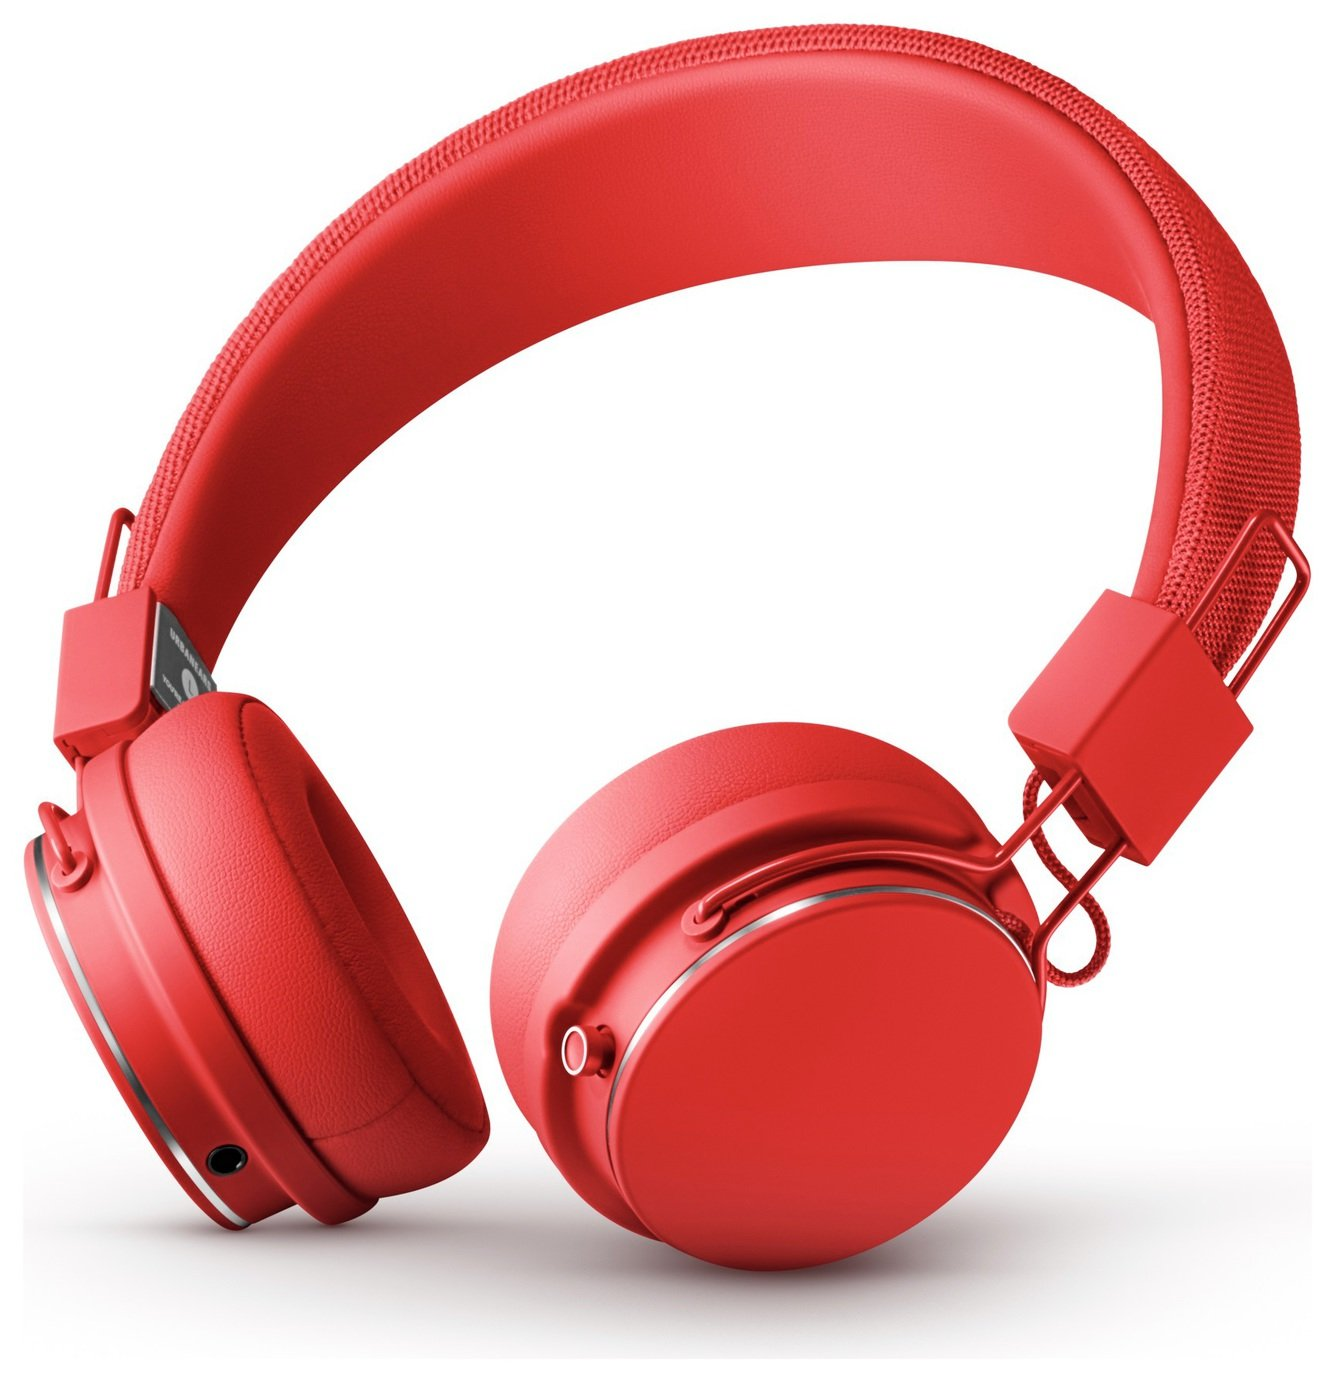 Urbanears Plattan 2 Bluetooth On-Ear Headphones - Tomato